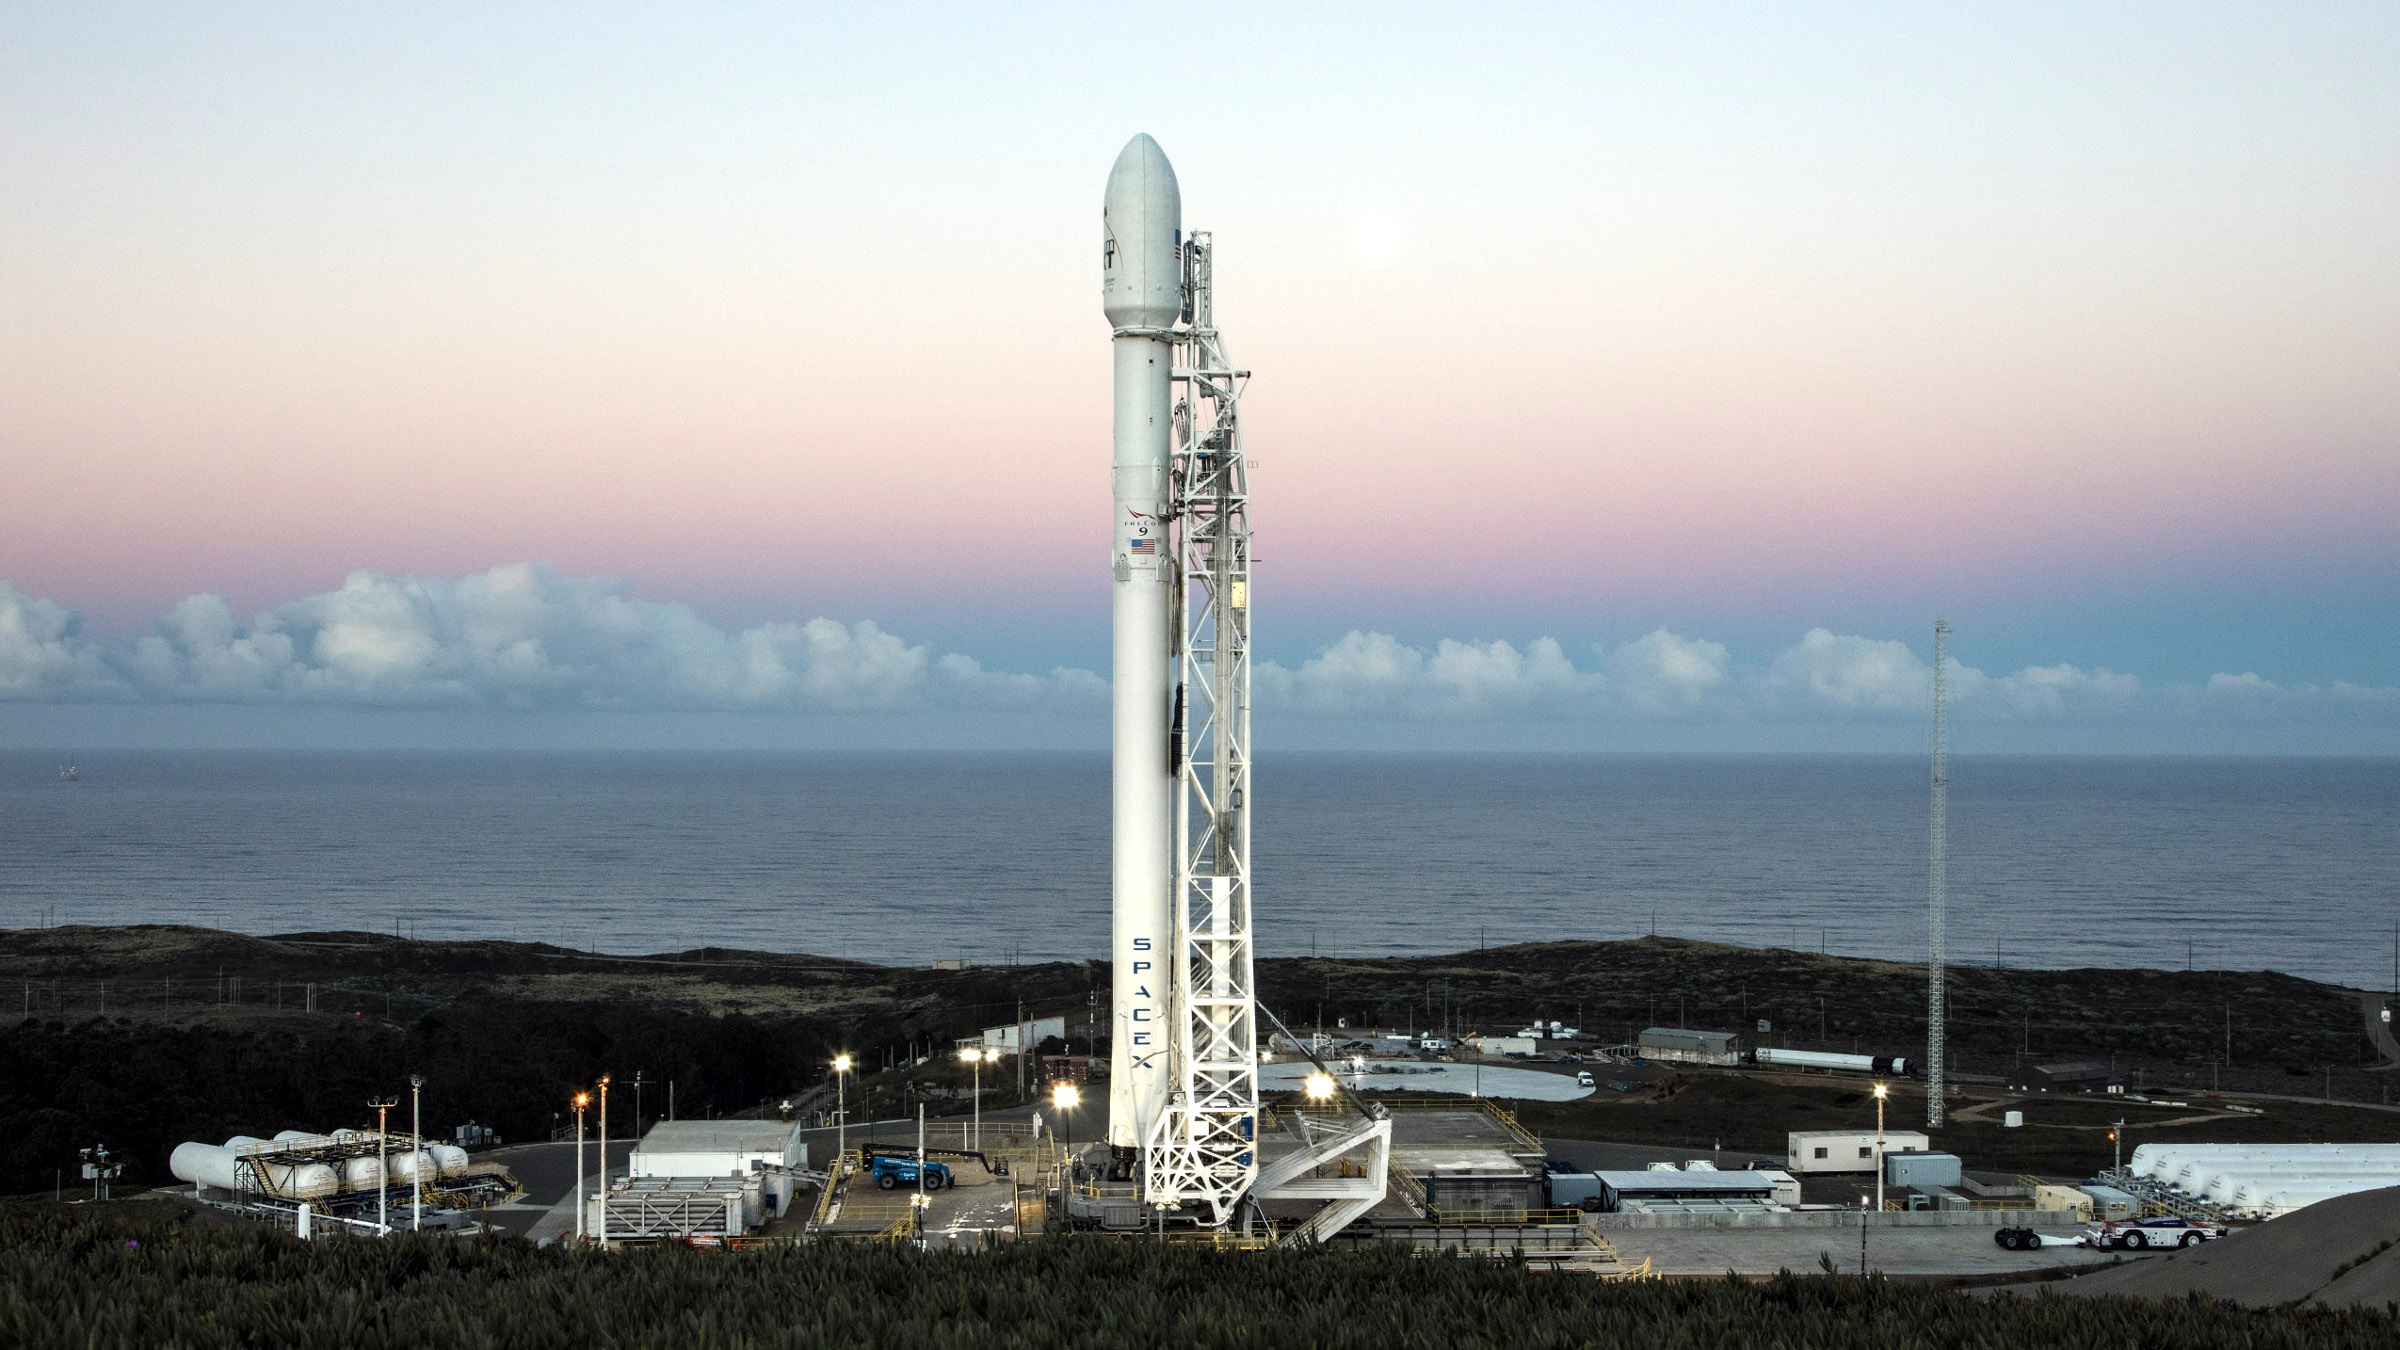 Falcon 9 with 10 Iridium NEXT communications satellites at Space Launch Complex 4E at Vandenberg Air Force Base, California.